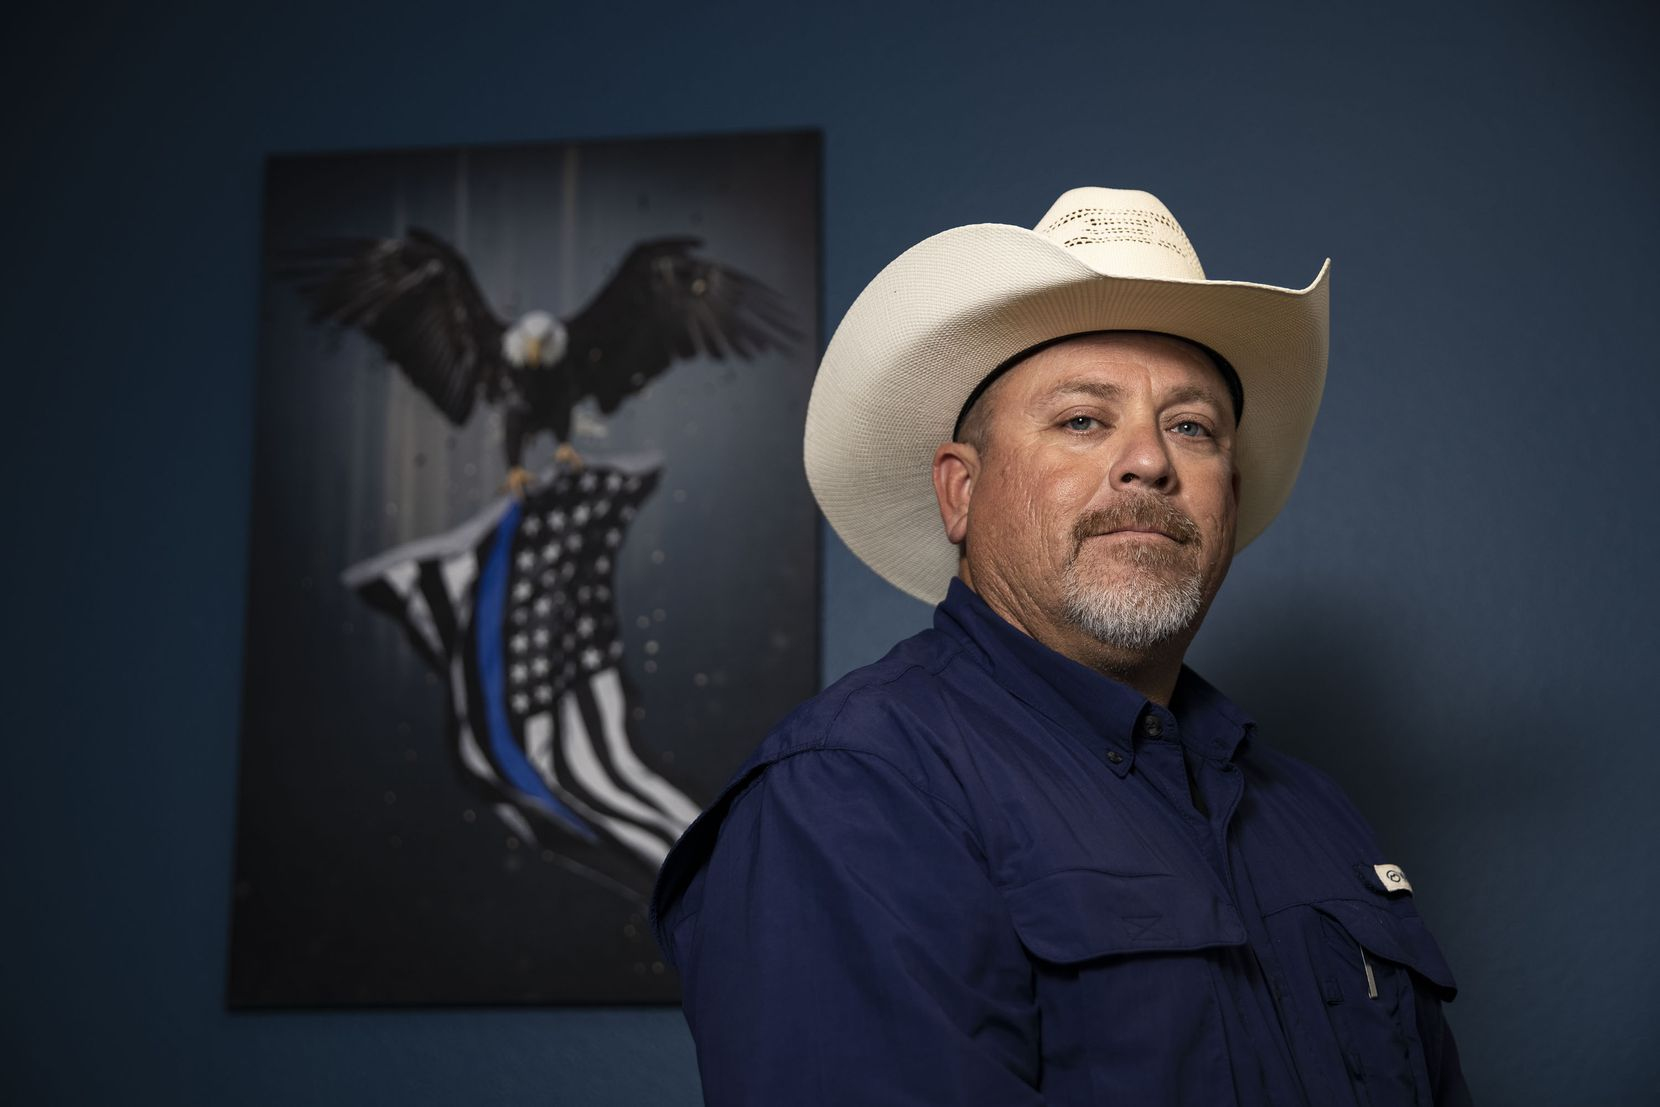 Hood County investigator George Zamarron poses for a portrait at the Hood County Sheriff's Office in Granbury, Texas, on Thursday, July 1, 2021. Zamarron led the sheriff's investigation of the death of Christopher Allen Whiteley.